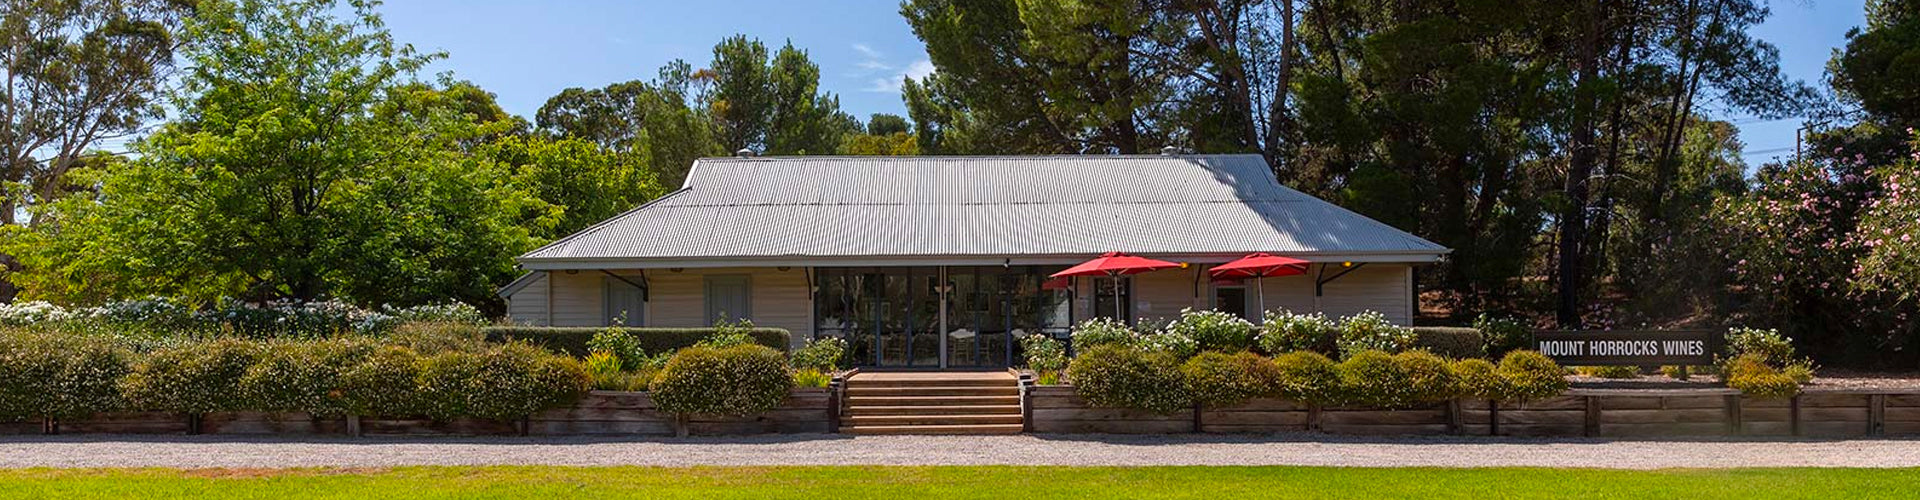 The Mount Horrocks Winery Building in Clare Valley